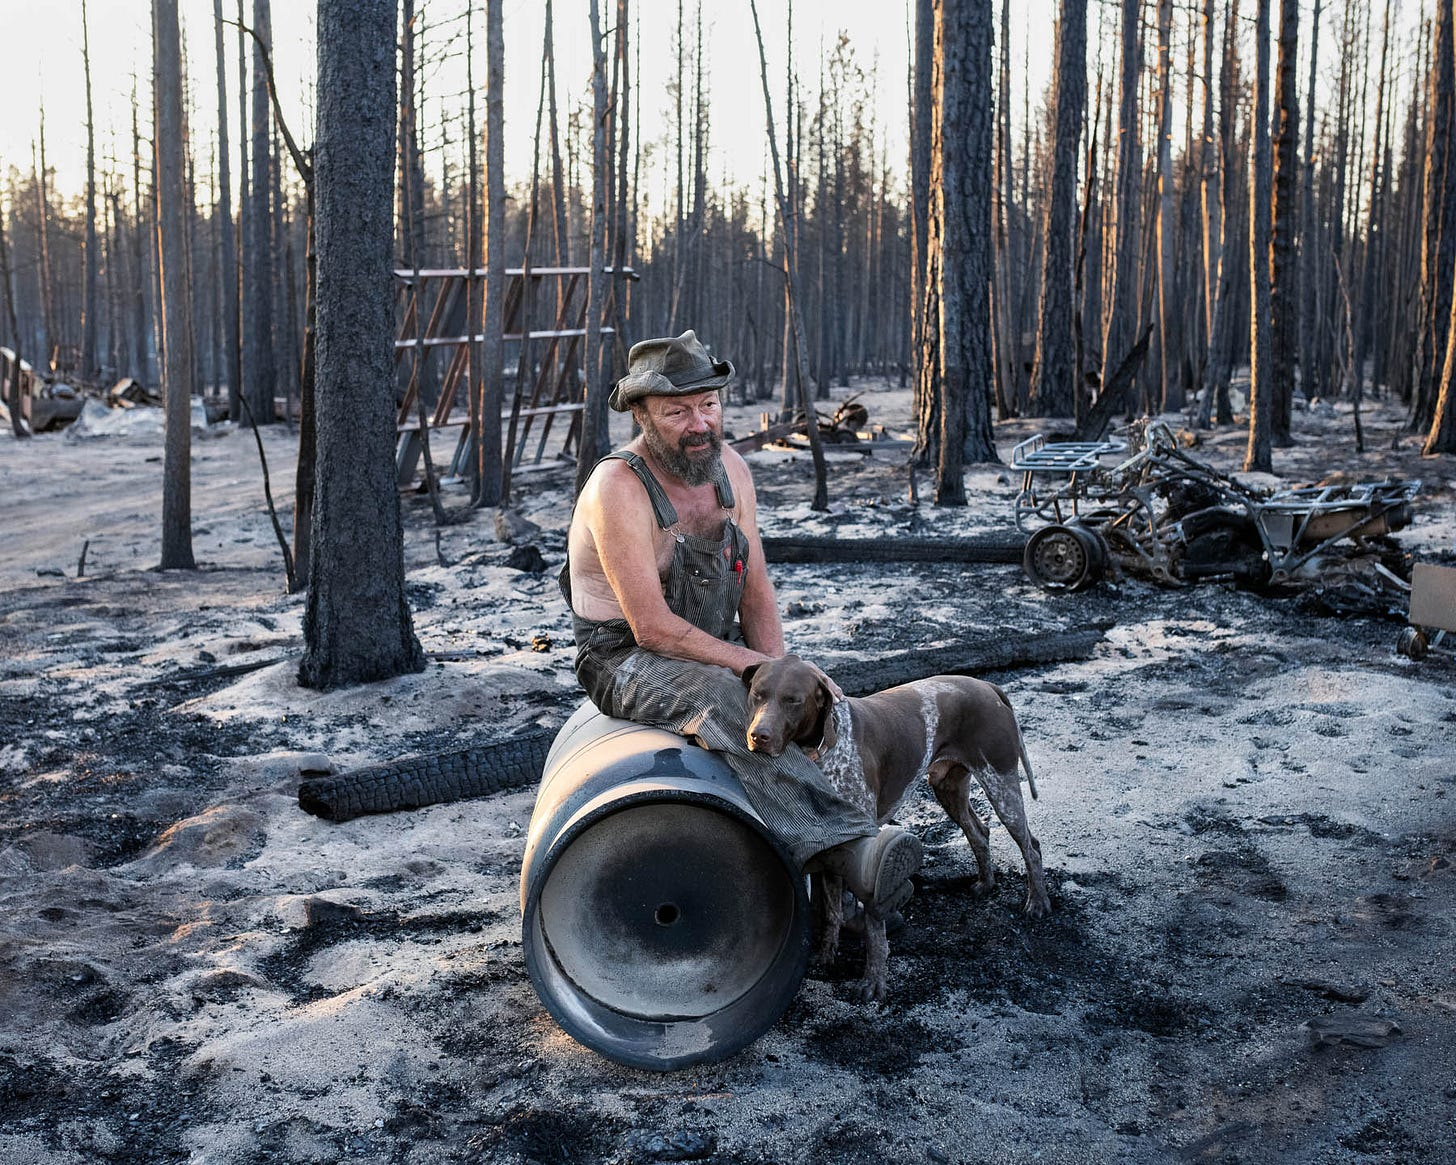 """Jeff Whited sits among his destroyed belongings on July 22. The Bootleg Fire arrived """"just like a freight train,"""" says Whited. """"It looks like a freaking bomb went off."""" The 63-year-old had been helping clean up the wreckage of his brother's burned-down house when flames reached his own. Guitars and amplifiers, snowmobiles and trucks, engine parts, chain saws, a huge cache of hand tools and much more—all gone, Whited says. """"This sure was a beautiful place,"""" he says. """"It doesn't leave a beautiful memory with me, not this picture of it."""" At the grave of his partner on his 12-acre property, wind chimes used to hang in the trees. Whited recalls asking why she wanted so many of them, to which she replied, """"When I'm gone, baby, you'll know I'm still there when you hear 'em."""" After the fire, he says, """"I can't hear one. They're gone. Every wind chime."""""""